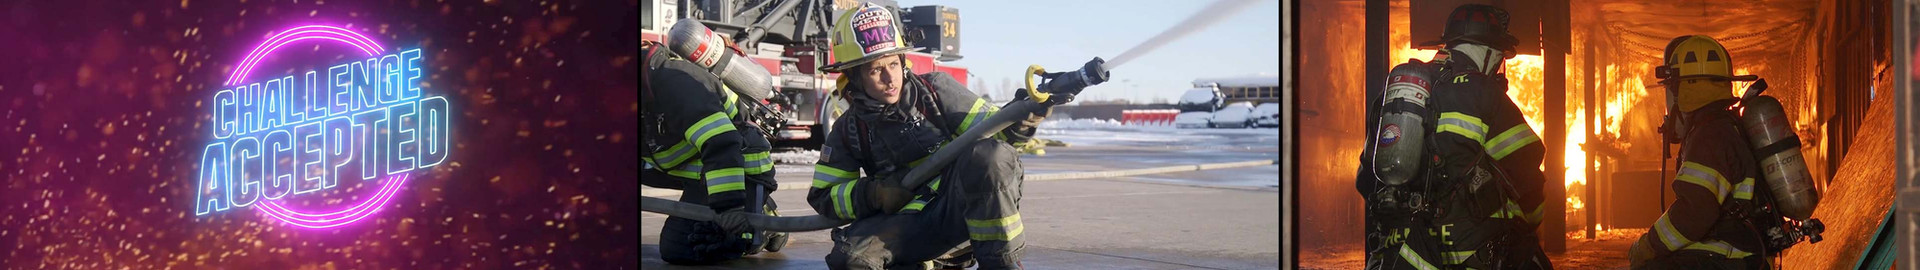 I Tried Firefighter Academy   Michelle Khare